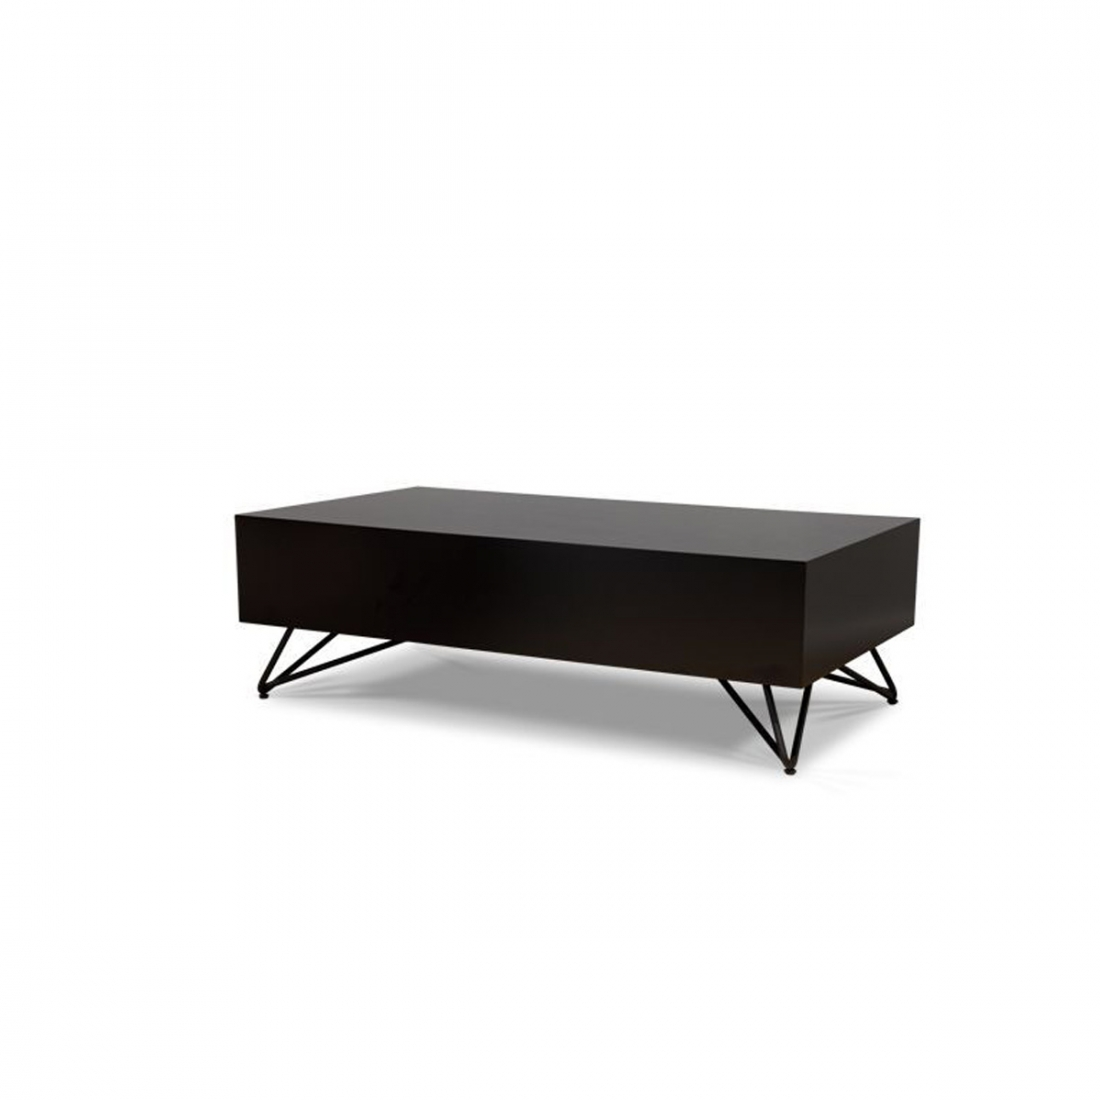 table basse de salon 4angle prostoria zendart design. Black Bedroom Furniture Sets. Home Design Ideas